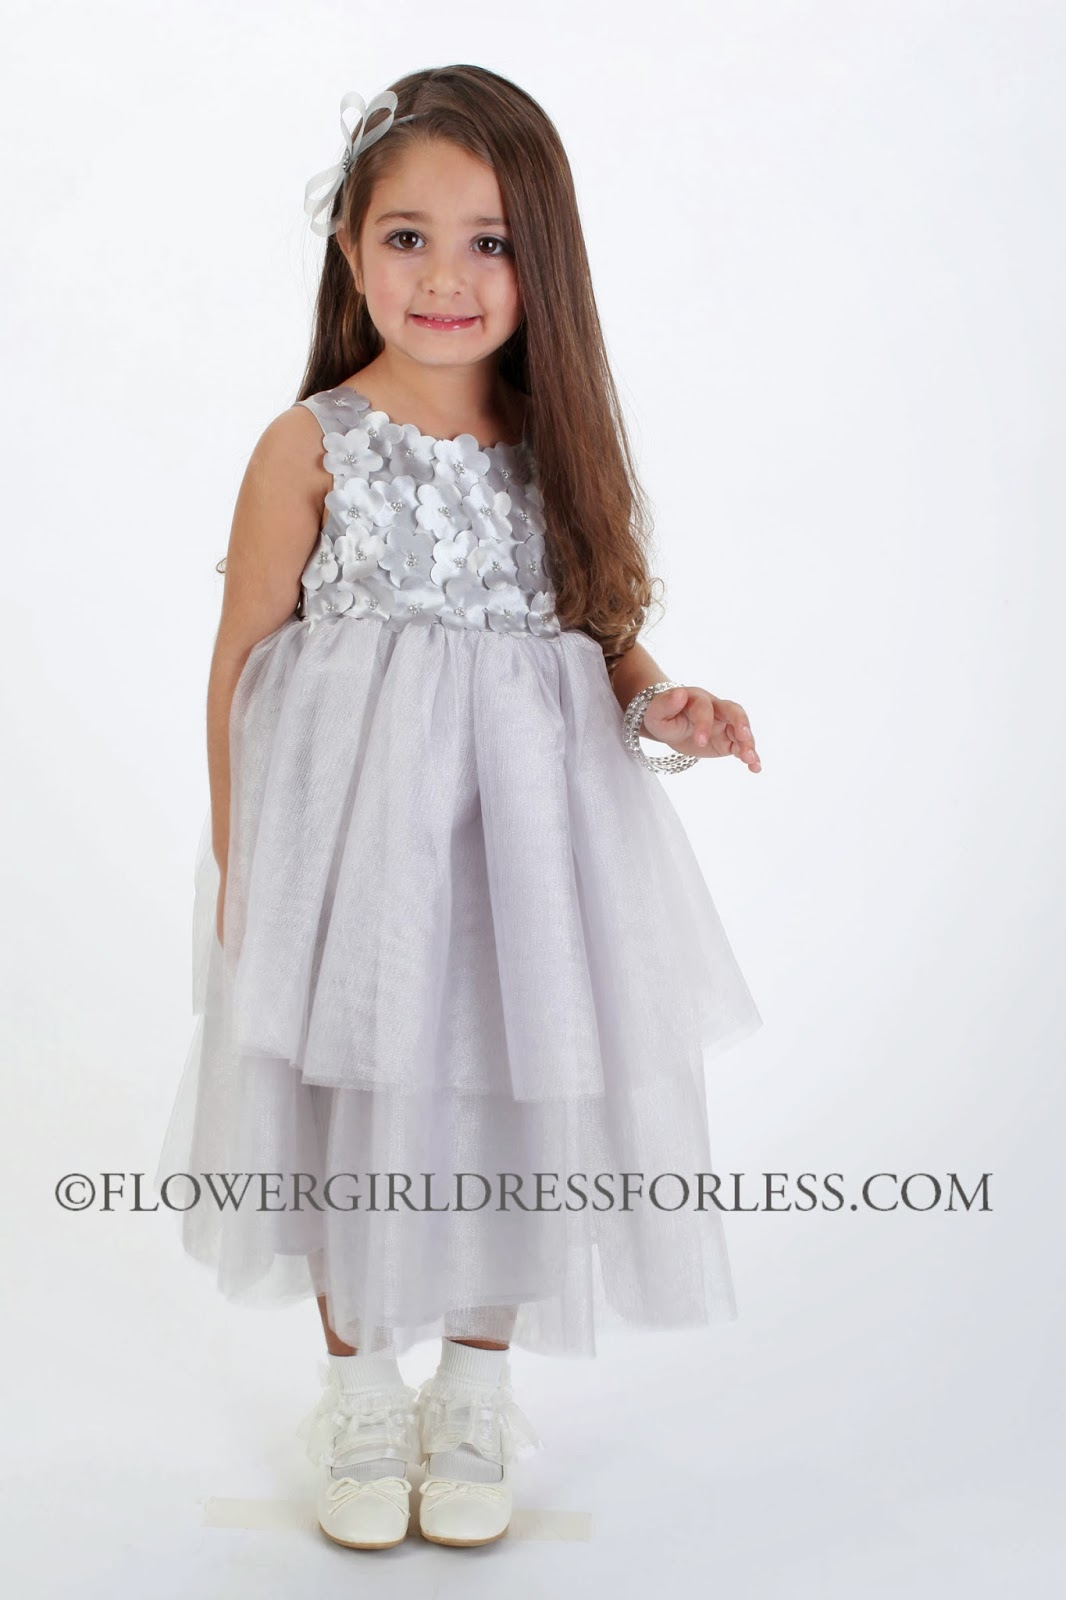 62a7494469 Biscotti flower girl dresses for today s modern bride